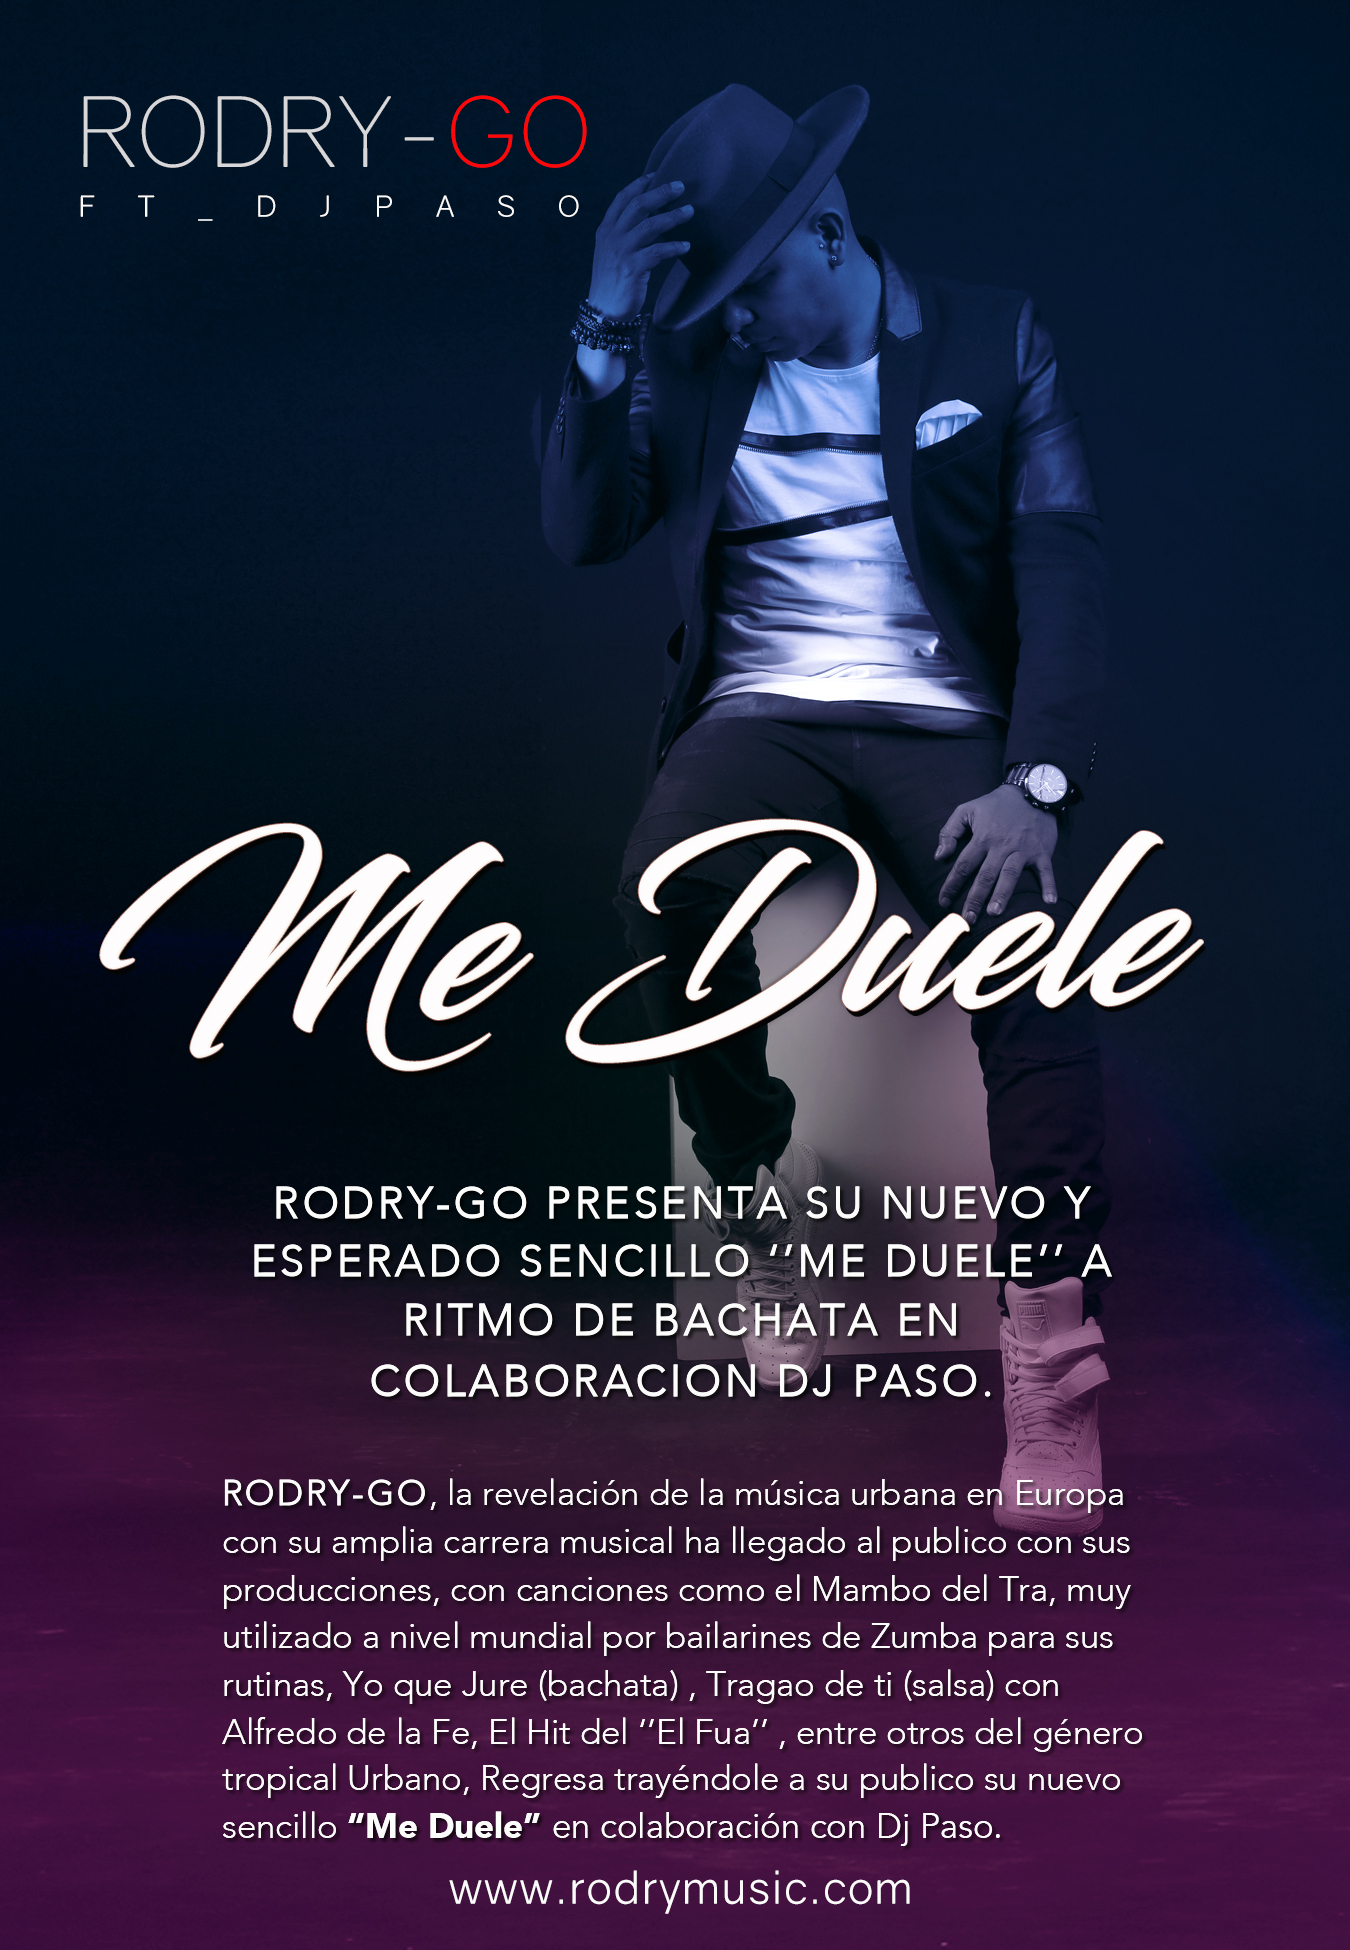 press-note-me-duele-v1